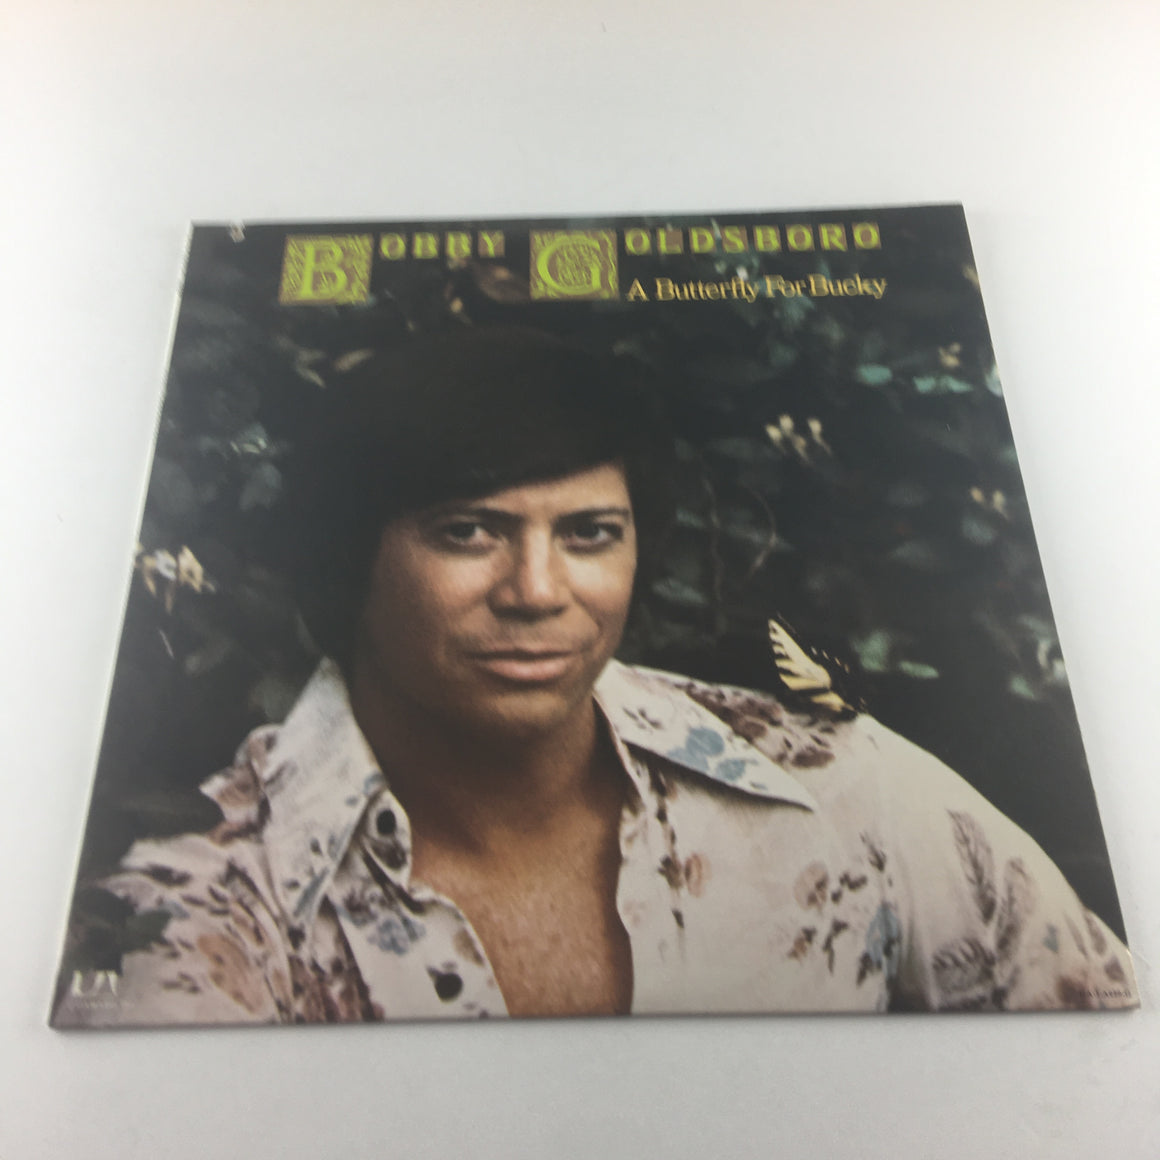 Bobby Goldsboro A Butterfly For Bucky Used Vinyl LP VG+\VG UA-LA639-G